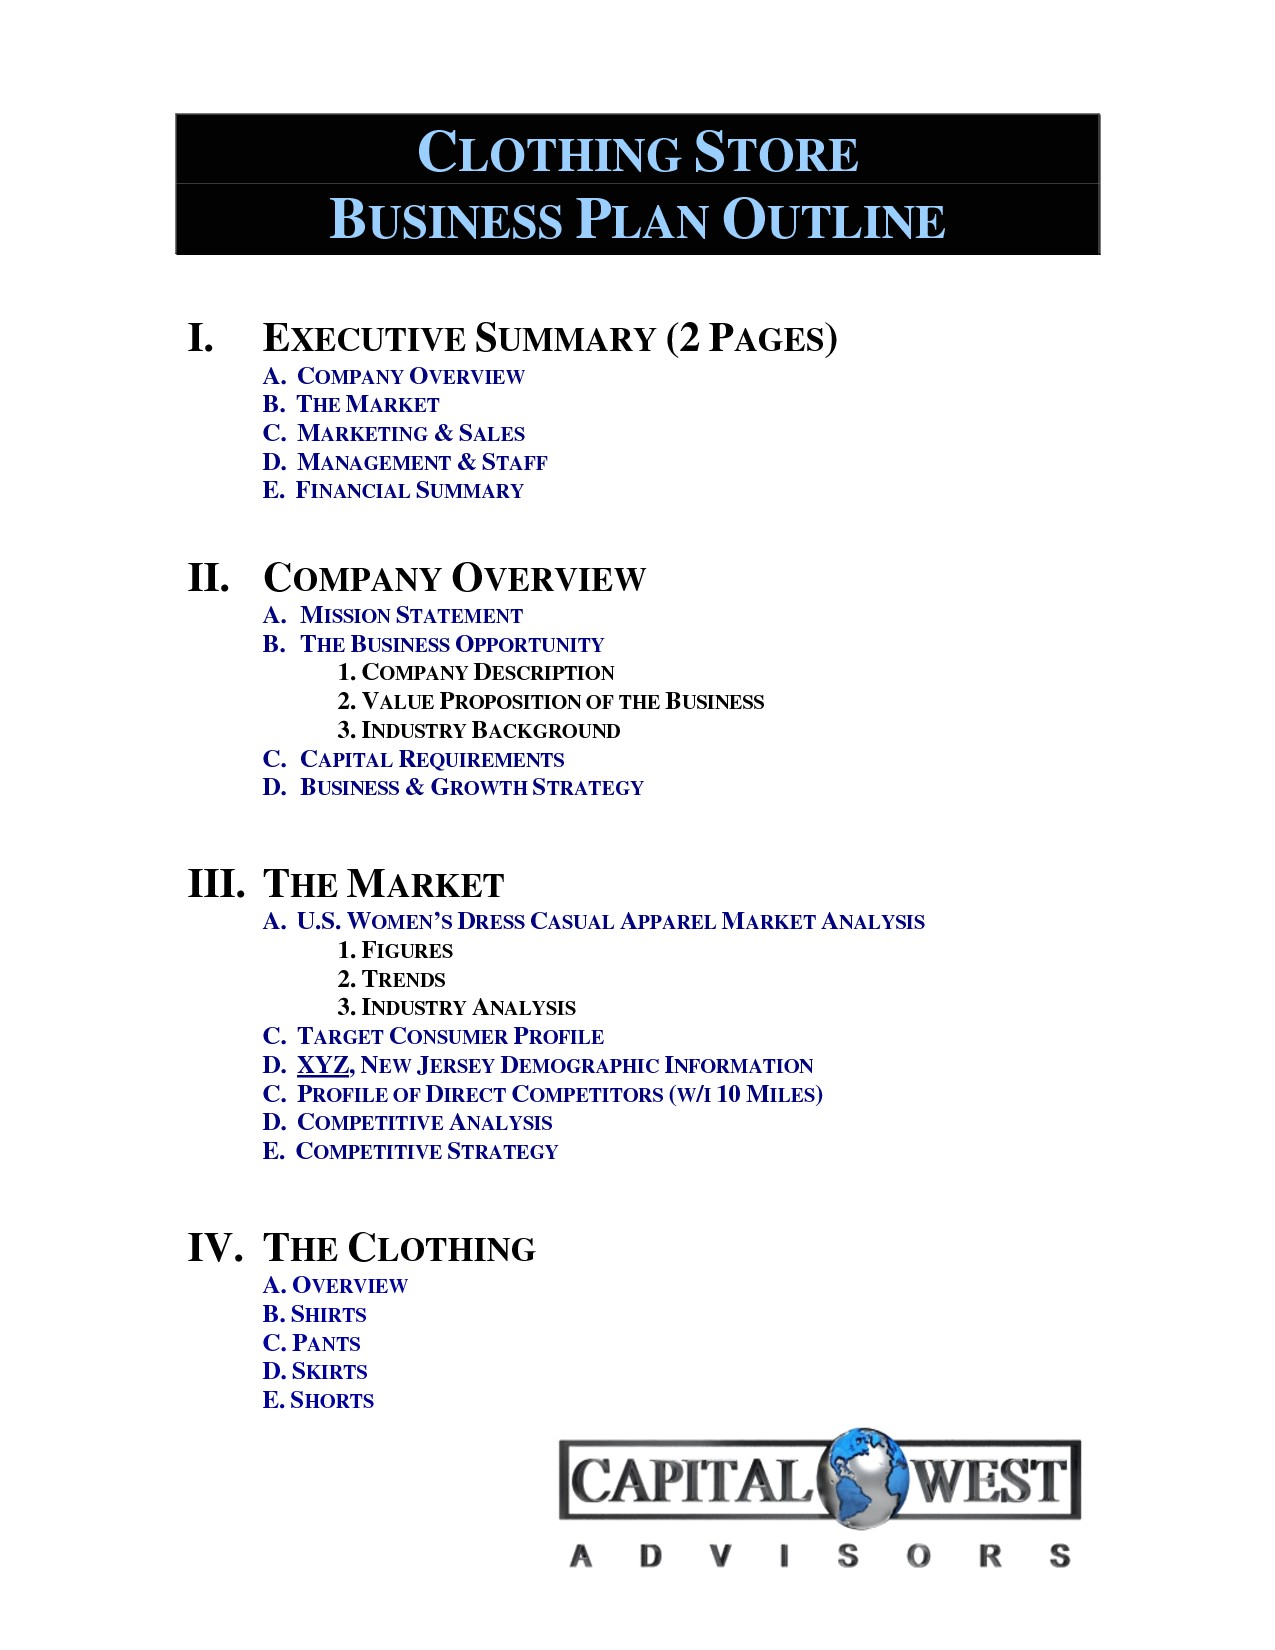 Quilt Shop Business Plan Template Clothing Line Business Plan Template Free Free Business